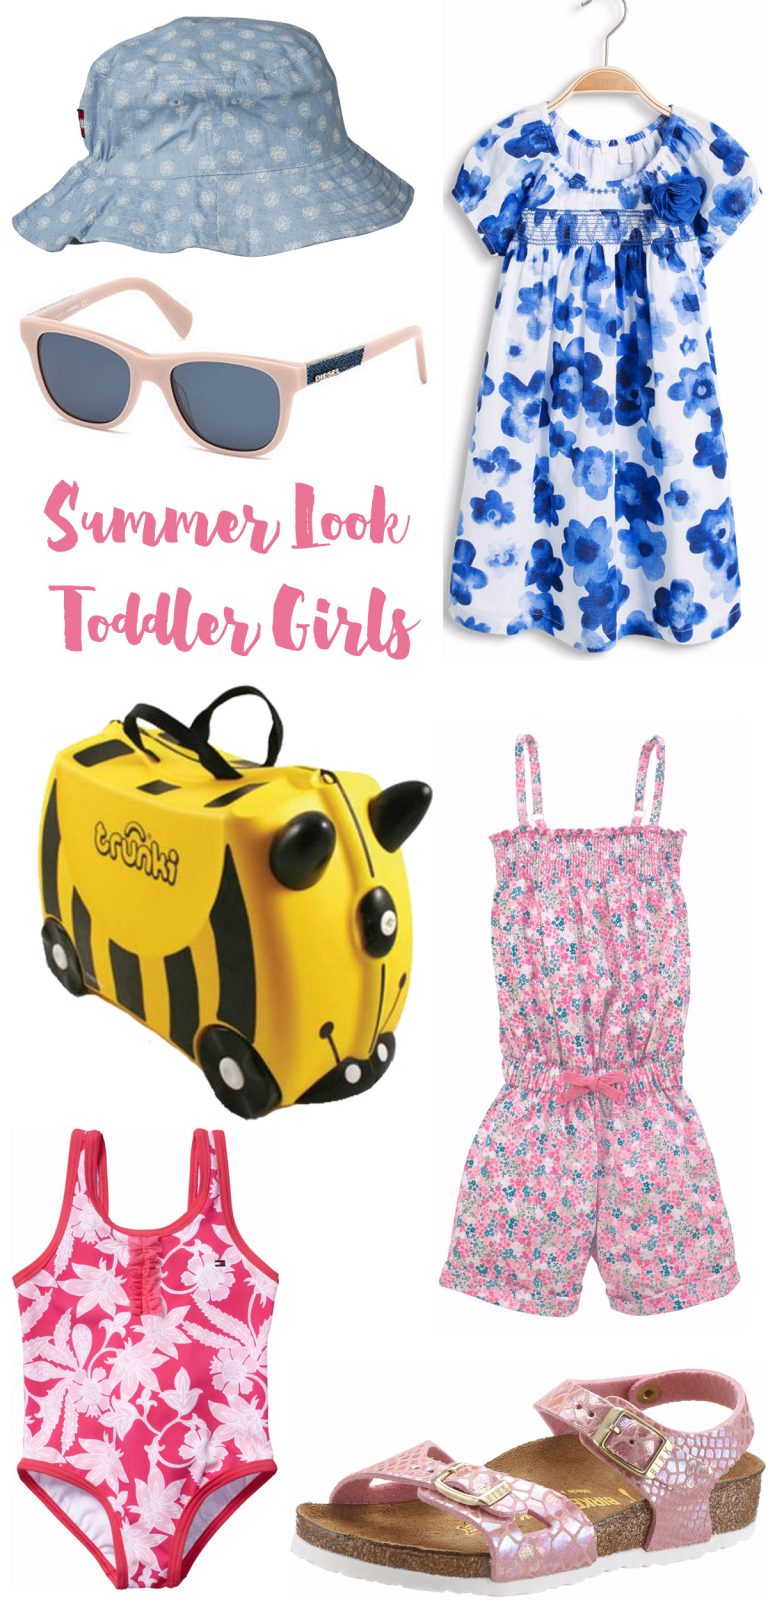 Otto Sommer Outfits Summer Look Toddler Girls